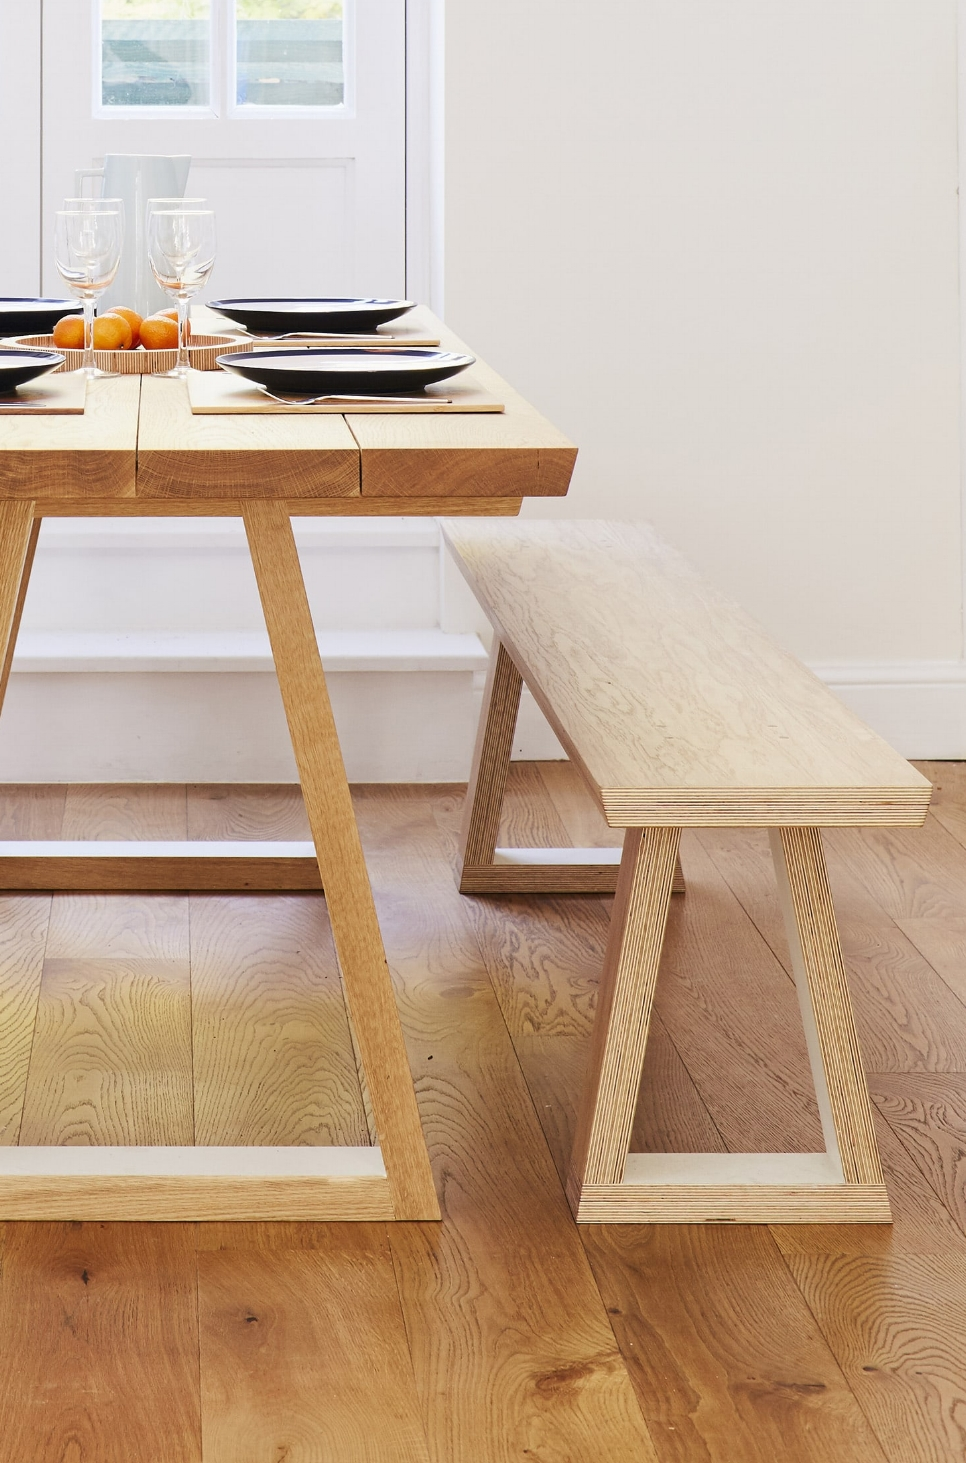 Cass wanted a long bench to match her one of a kind kitchen table.